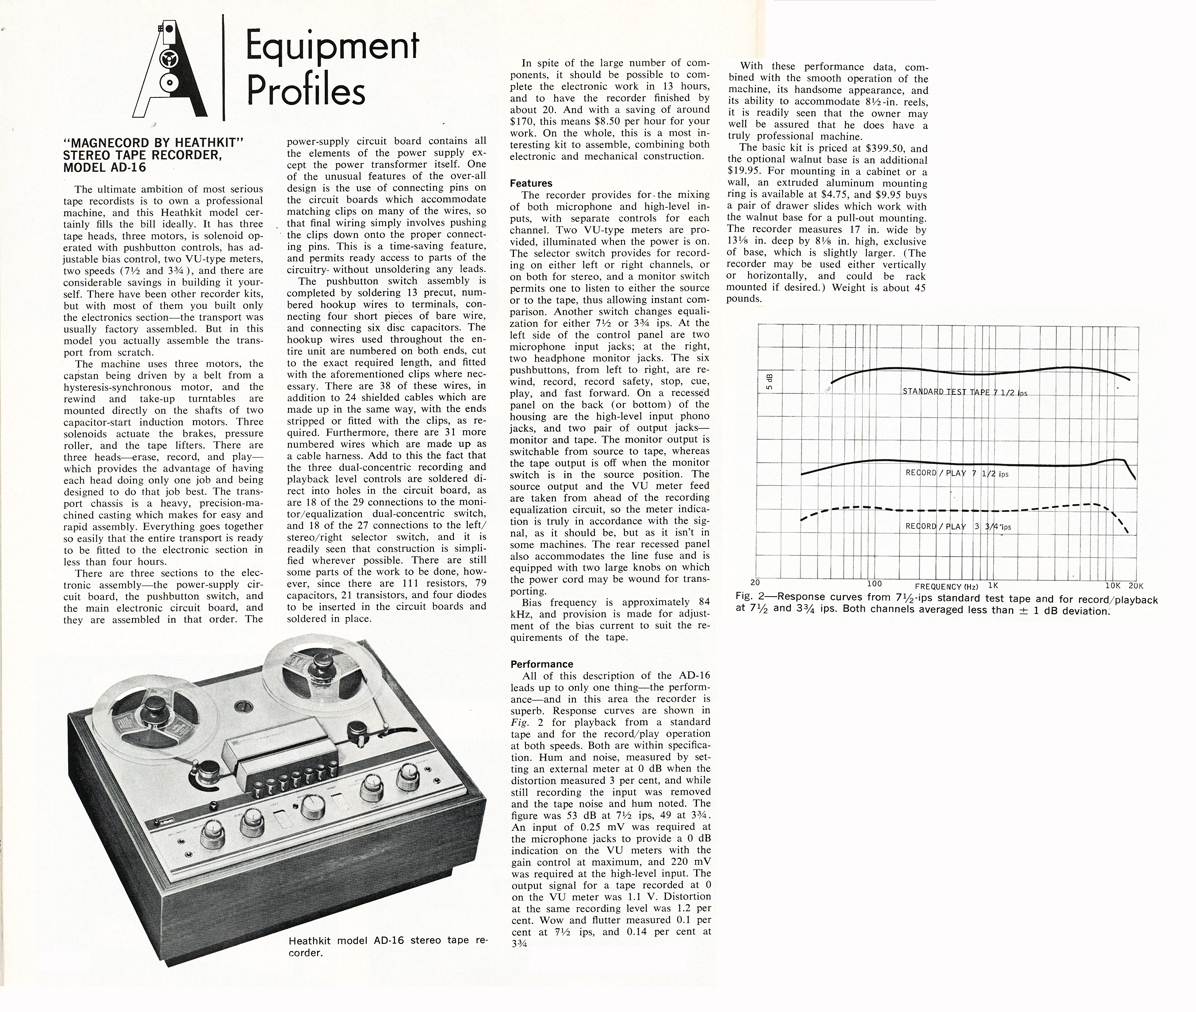 Magnecord HeathKit 1020 reel to reel tape recorder review in the rel2ReelTexas vintage recording collection